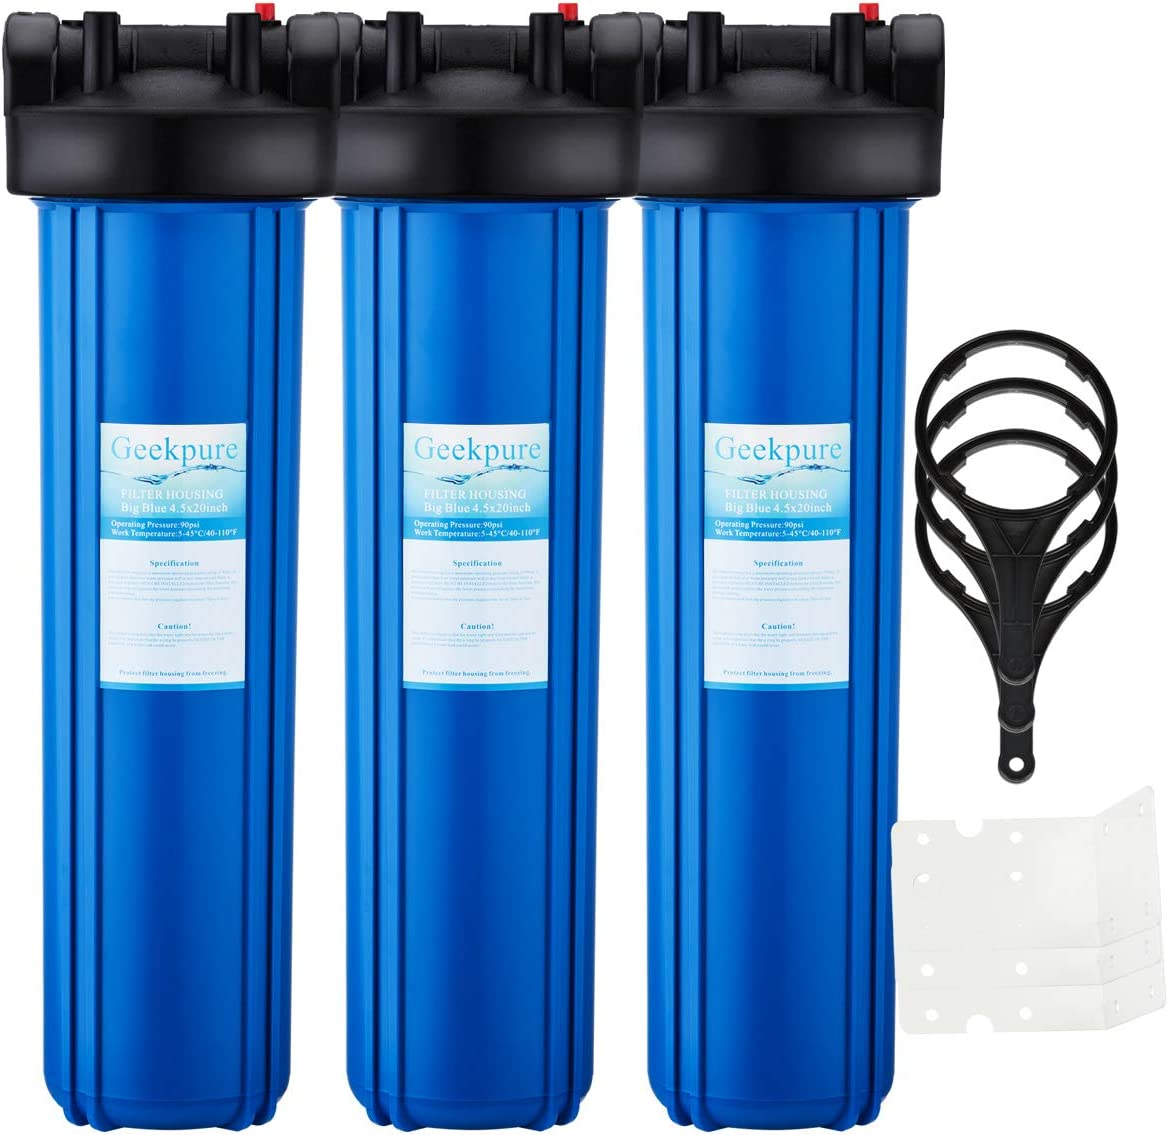 Geekpure BB-20B 3-Stage Whole House Water Filter